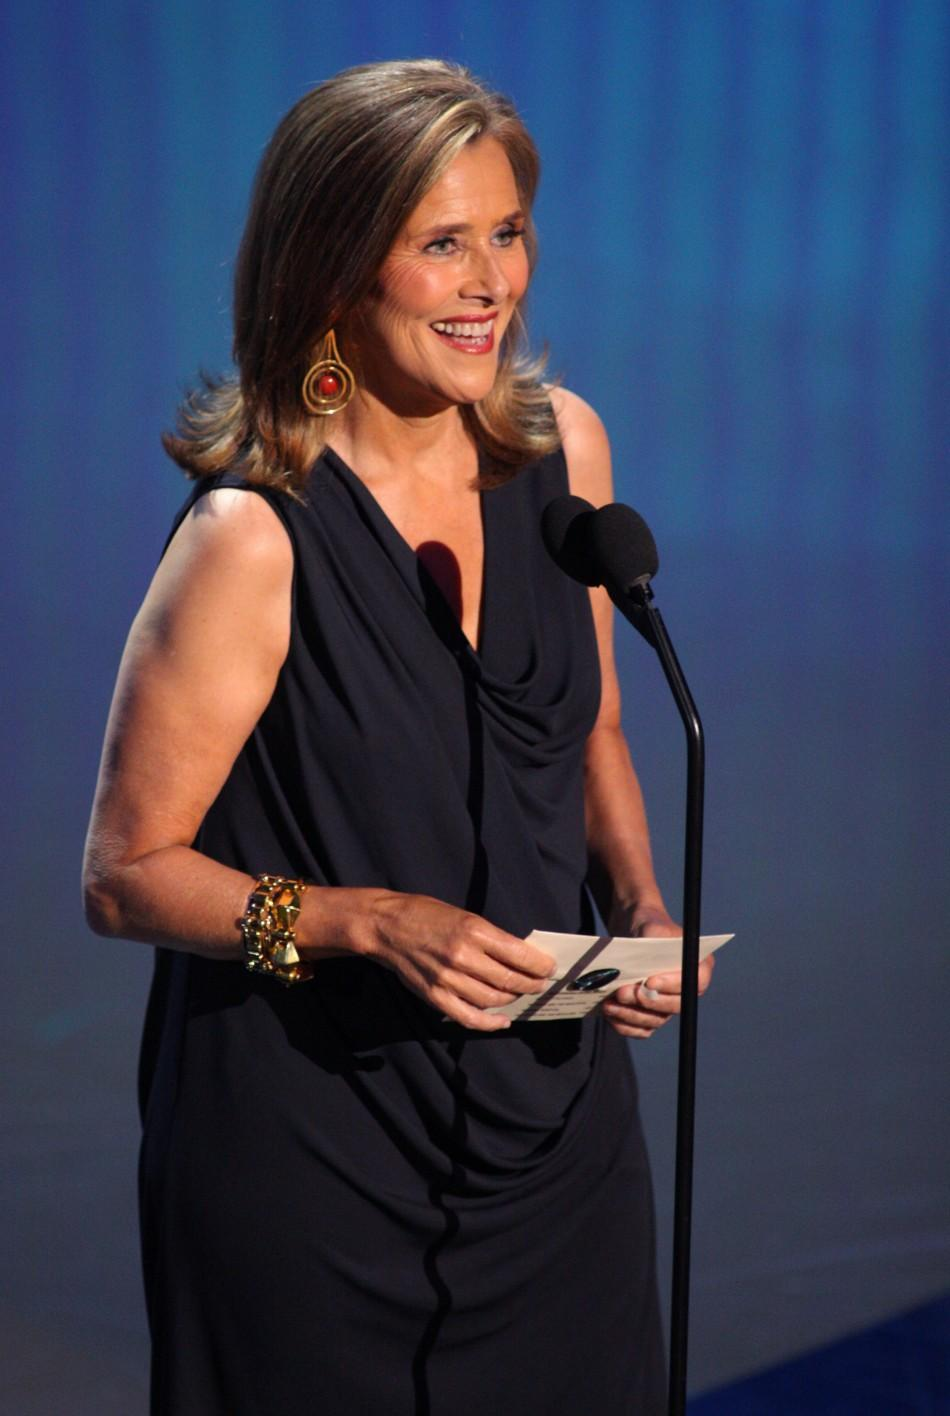 TV personality Meredith Vieira speaks onstage during the 38th Annual Daytime Entertainment Emmy Awards at the Las Vegas Hilton in Las Vegas